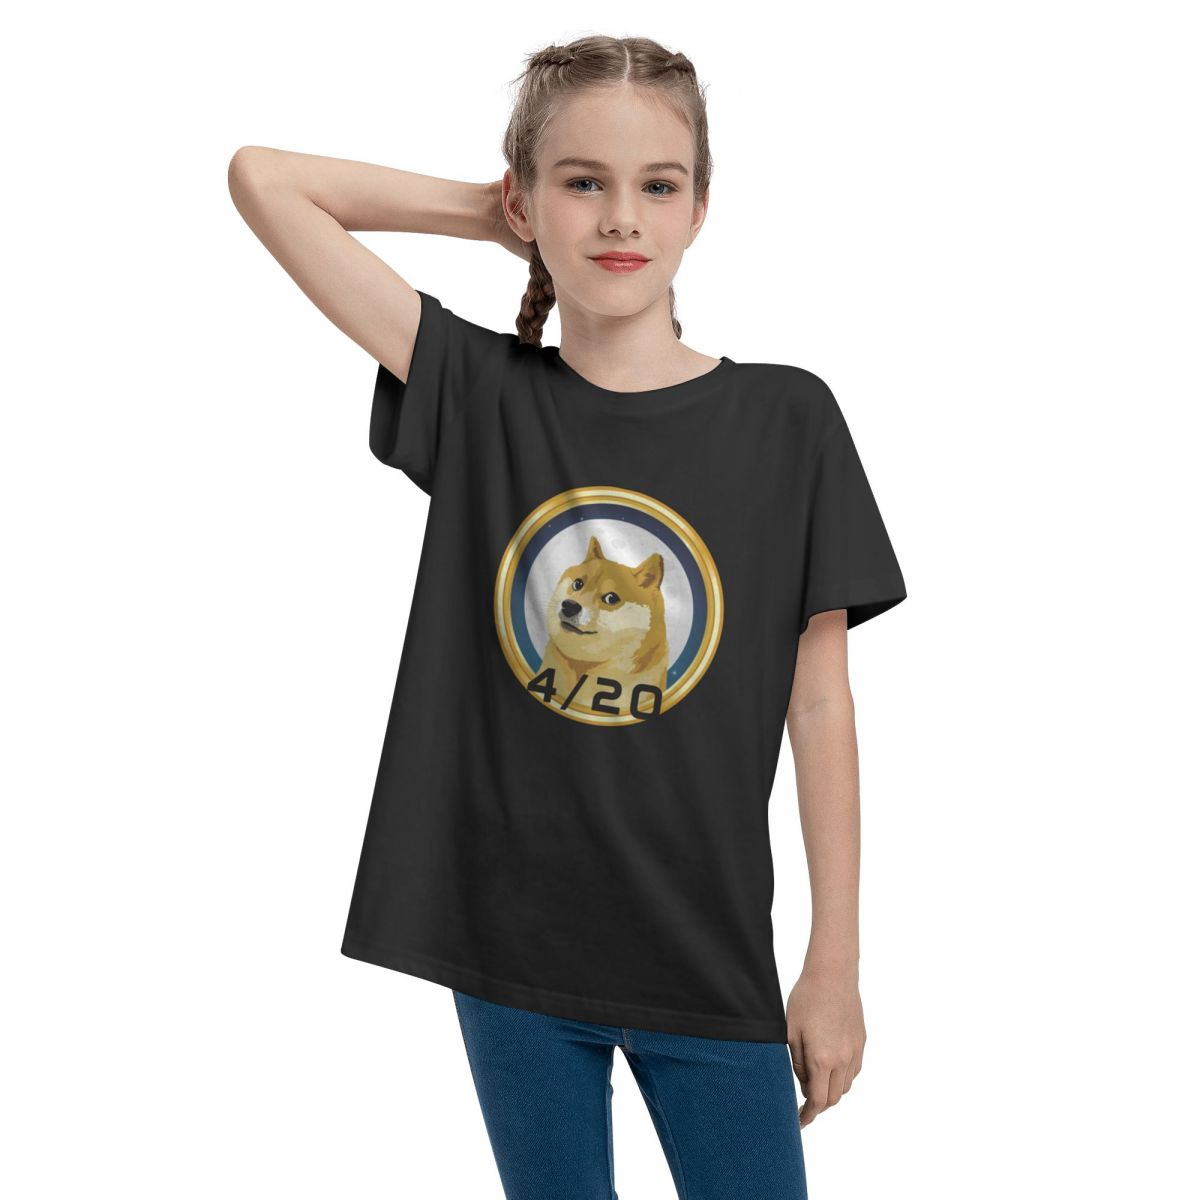 Dogecoin Doge Day 420 Stock Market Crypto Funny Comfortable Teenage T-shirt Unisex Comfortable Fashion Summer Tops 100% Cotton